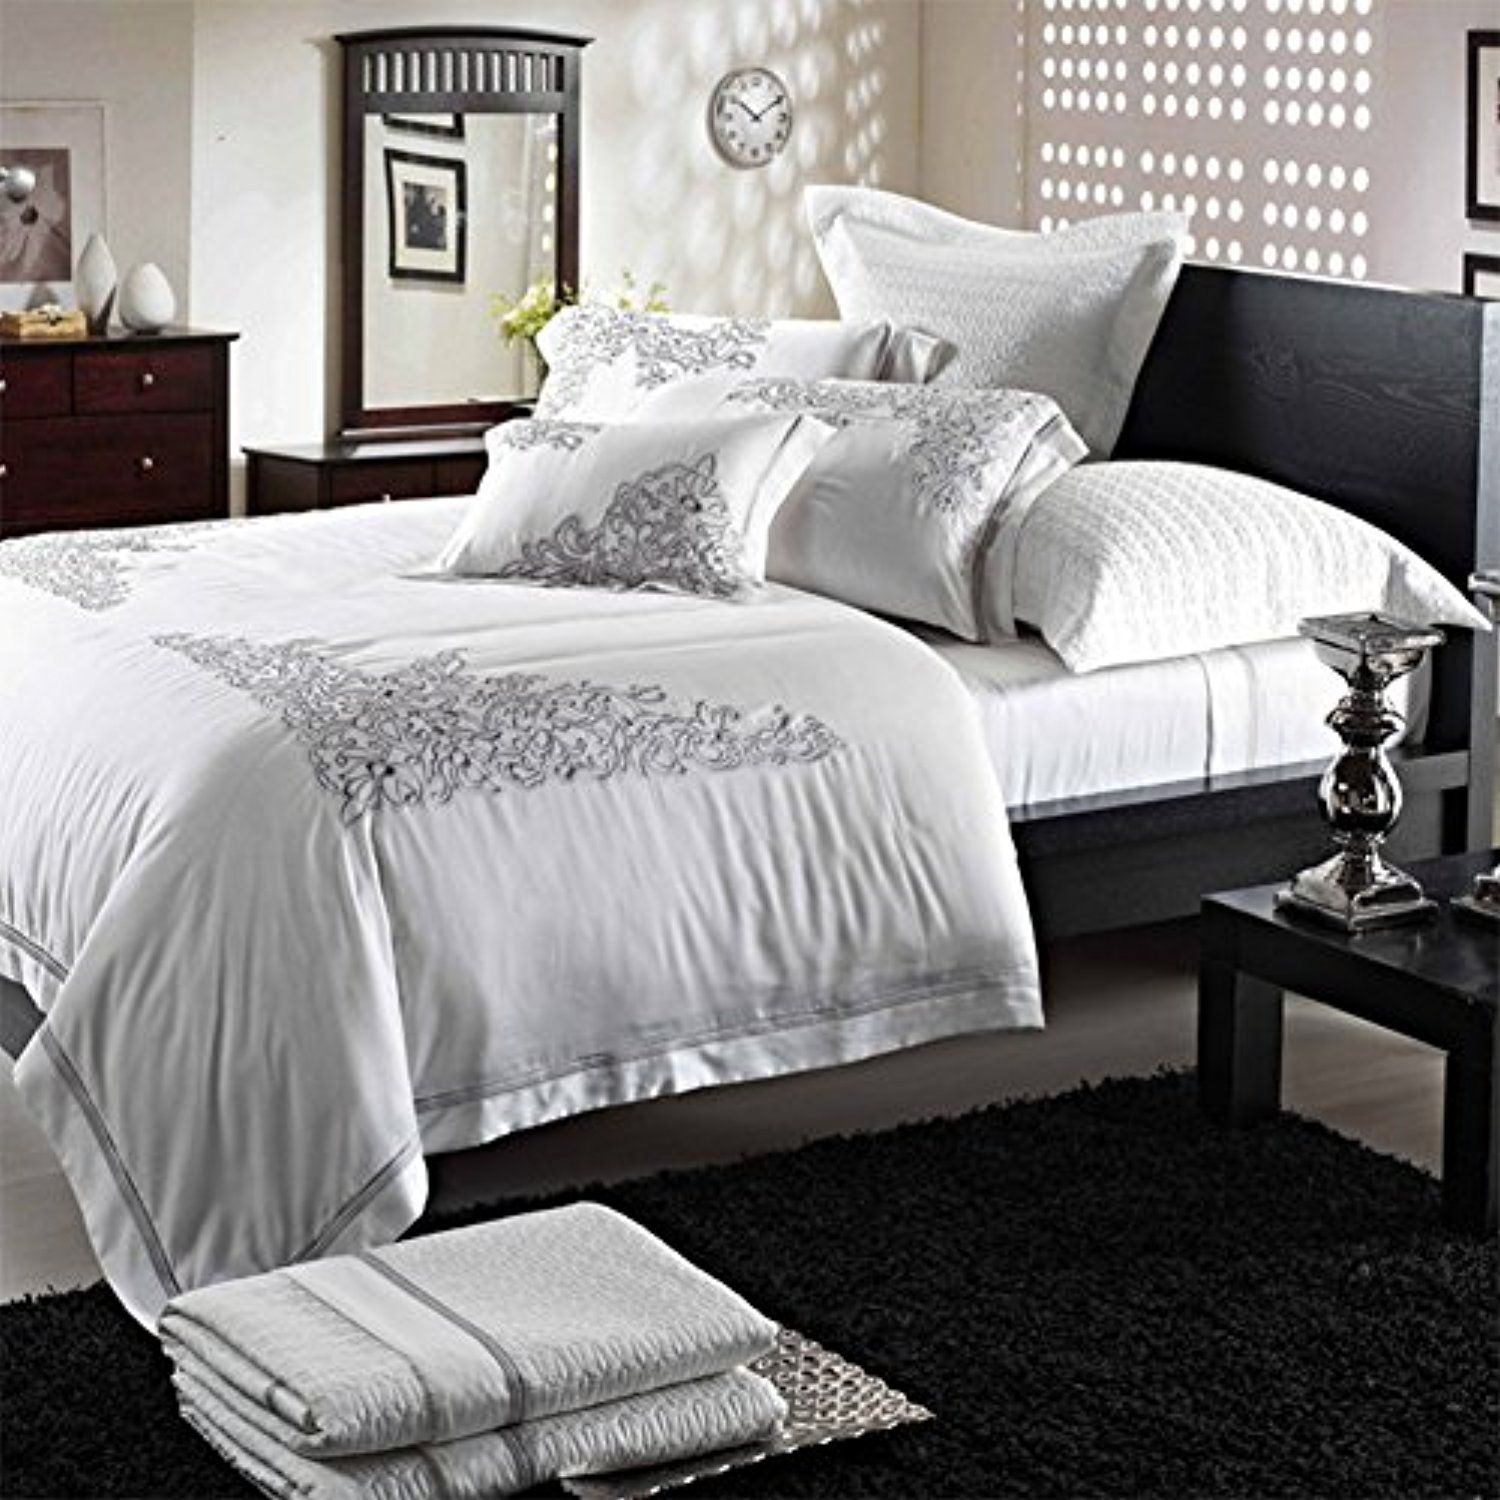 silk 4 Piece double bed sheet quilt cover